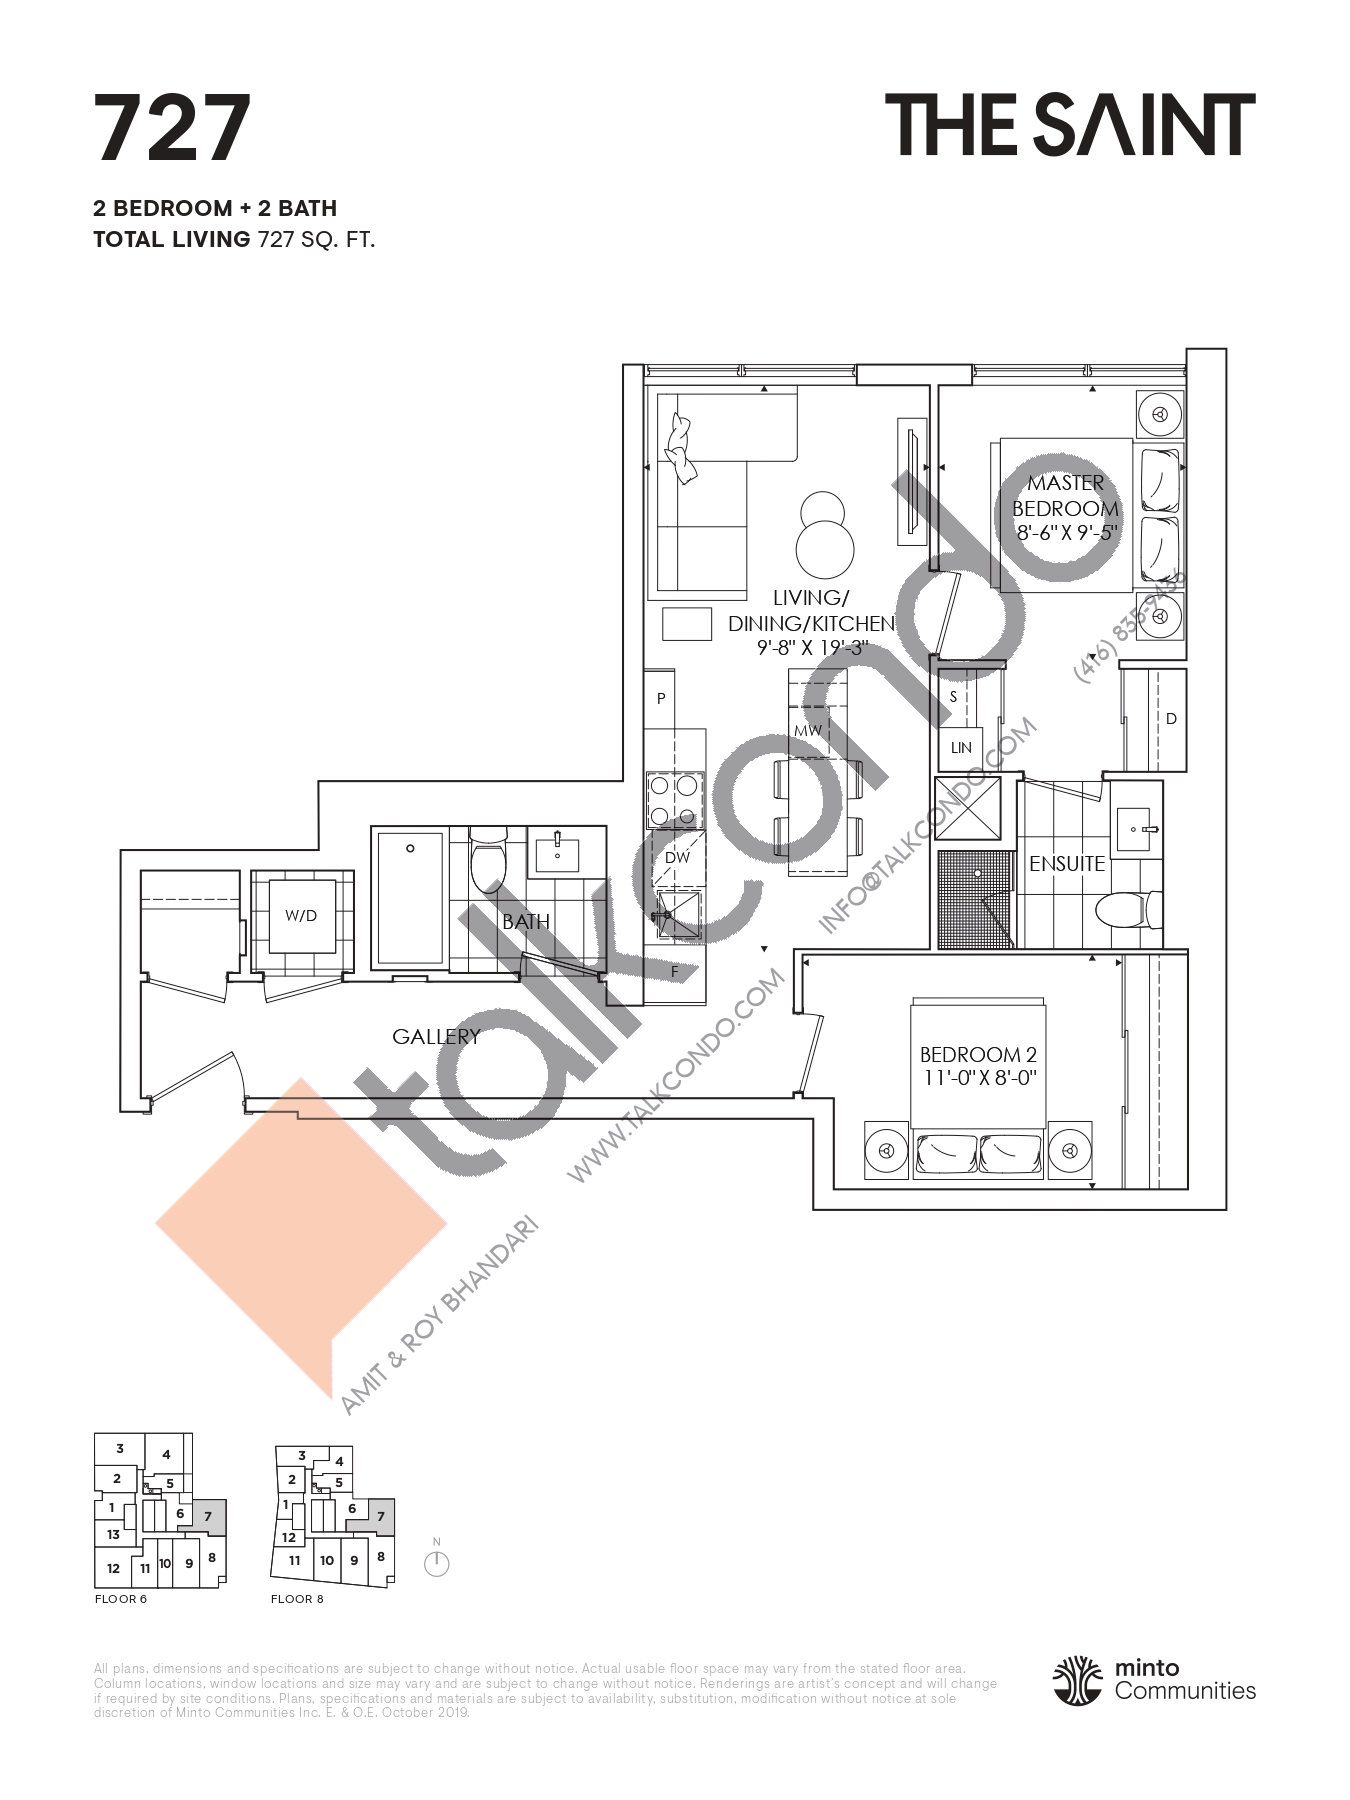 727 Floor Plan at The Saint Condos - 727 sq.ft